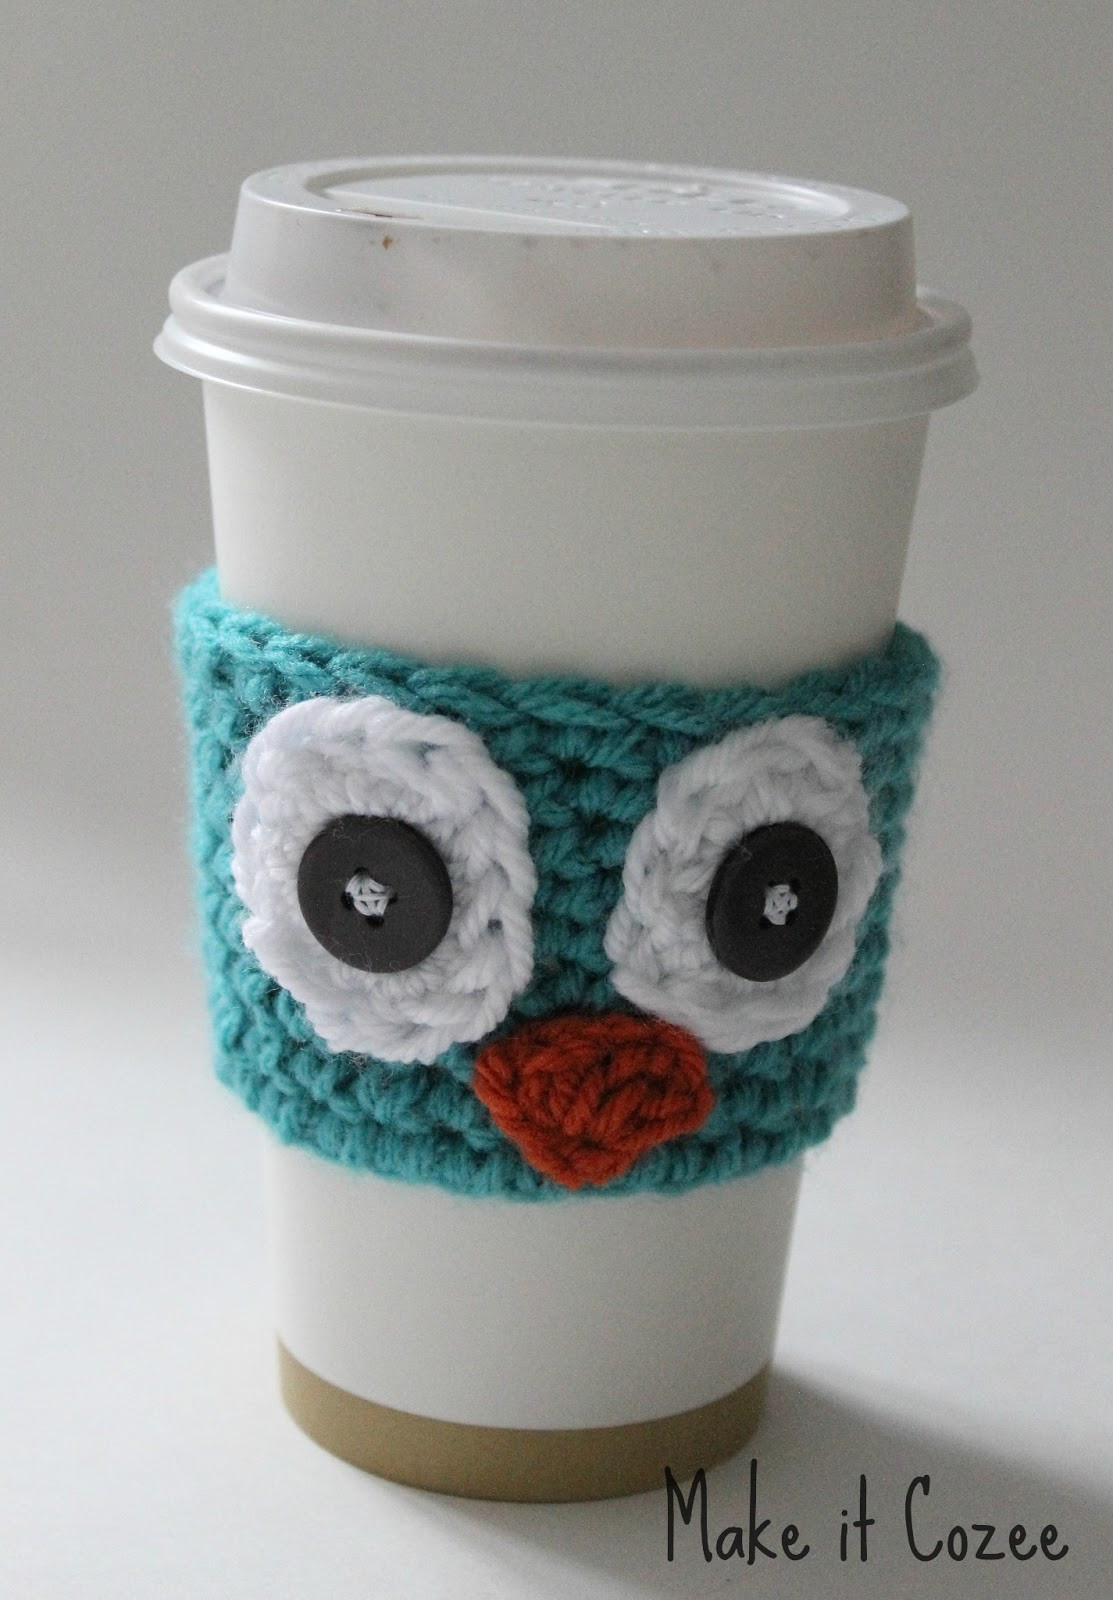 Crochet Coffee Cup Cozy Inspirational Make It Cozee Crochet Owl Coffee Cozy Of Unique 44 Pics Crochet Coffee Cup Cozy